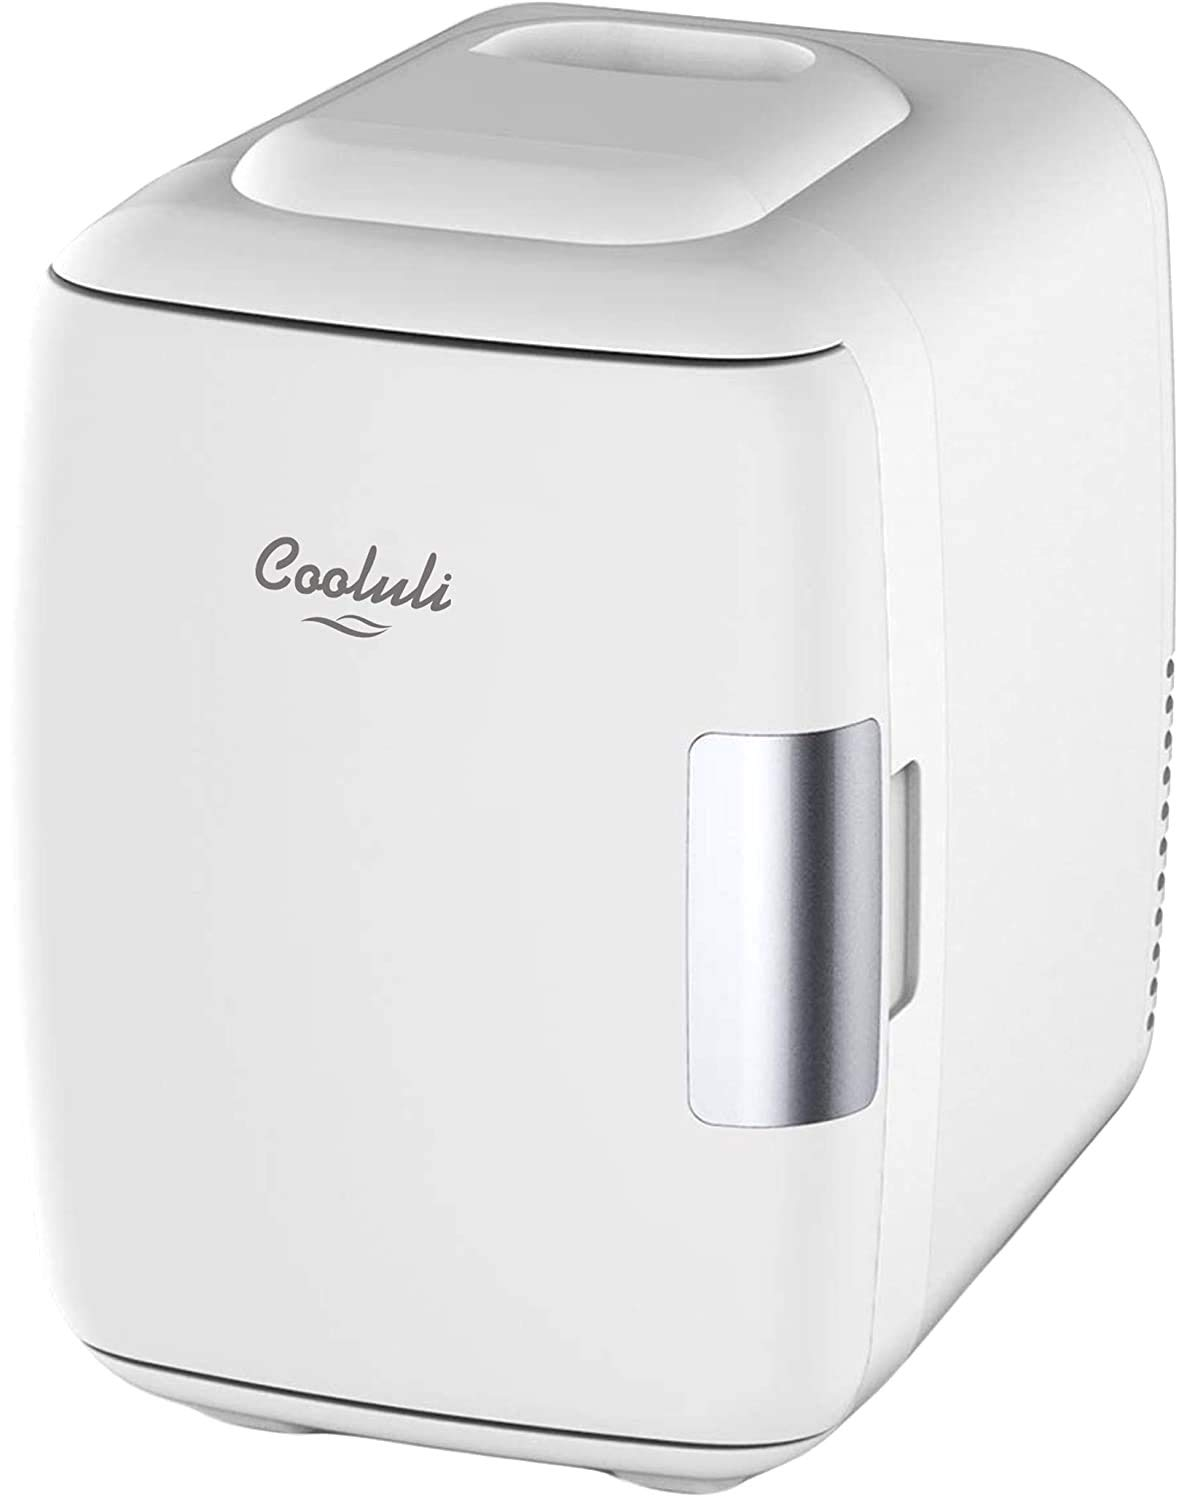 Cooluli Mini Fridge Electric Cooler and Warmer (4 Liter / 6 Can): AC/DC Portable Thermoelectric System w/ Exclusive On the Go USB Power Bank Option (White)                Mini Fridge 6 Liter Portable Beauty Makeup Skincare Fridge Cosmetics Refrigerator Compact Cooler Warmer for Bedroom, Office, Car, Dorm, Mirrored and Led Lighting Design AC/DC                Cooluli Concord Black 20 Liter Compact Cooler Warmer Mini Fridge for Bedroom, Office, Car, Dorm - Portable Makeup Skincare Fridge with Digital Temperature Control